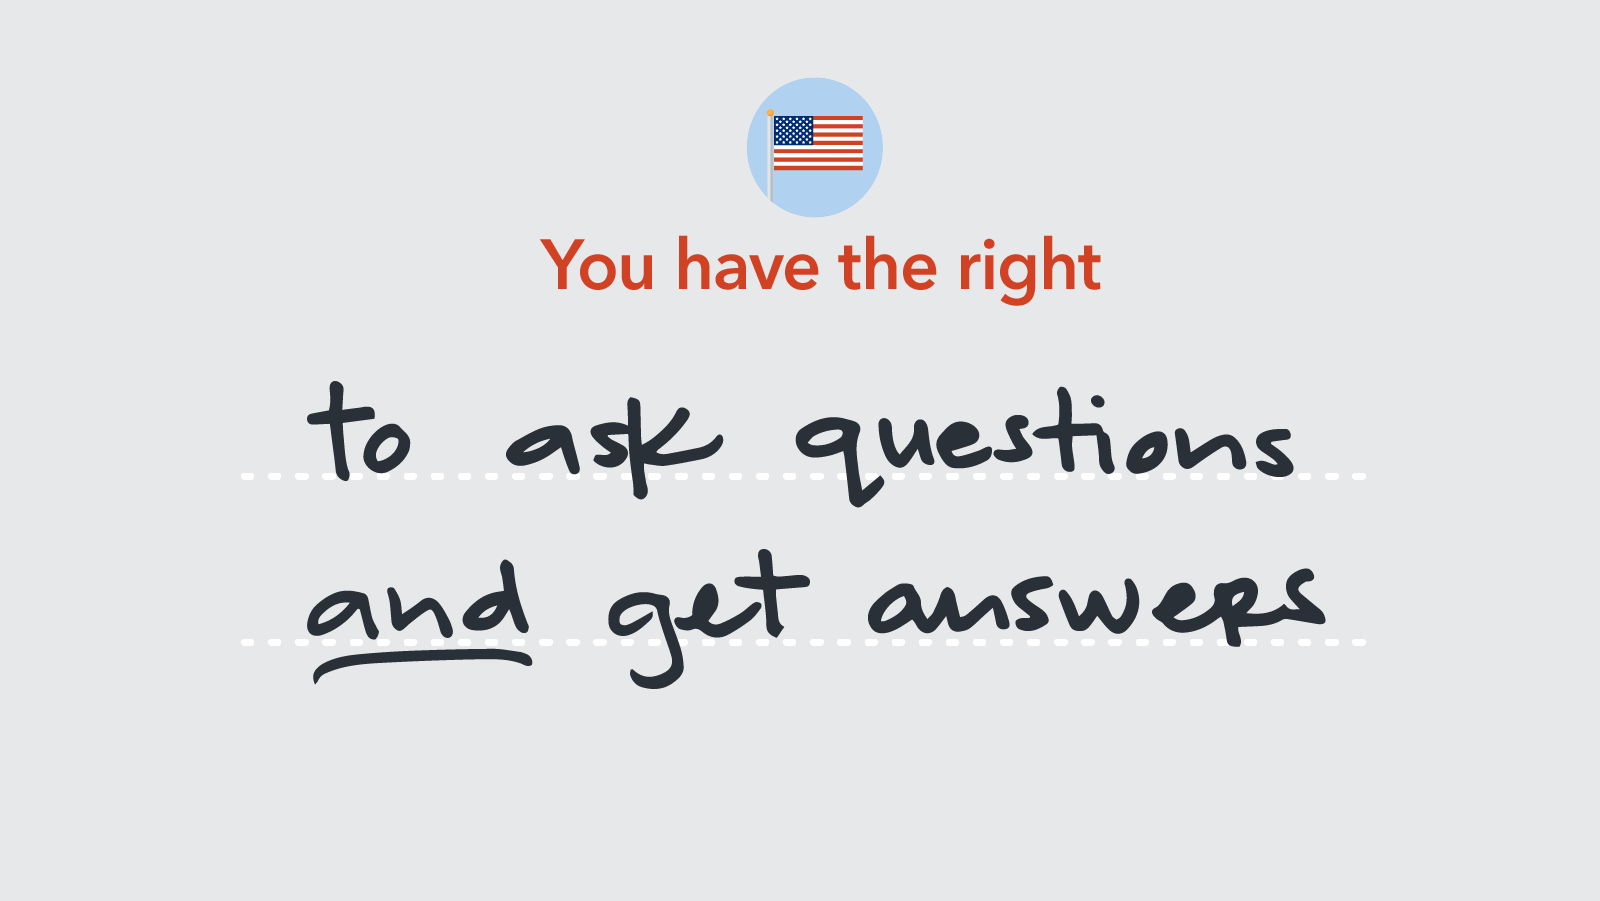 You have the right to ask questions and get answers